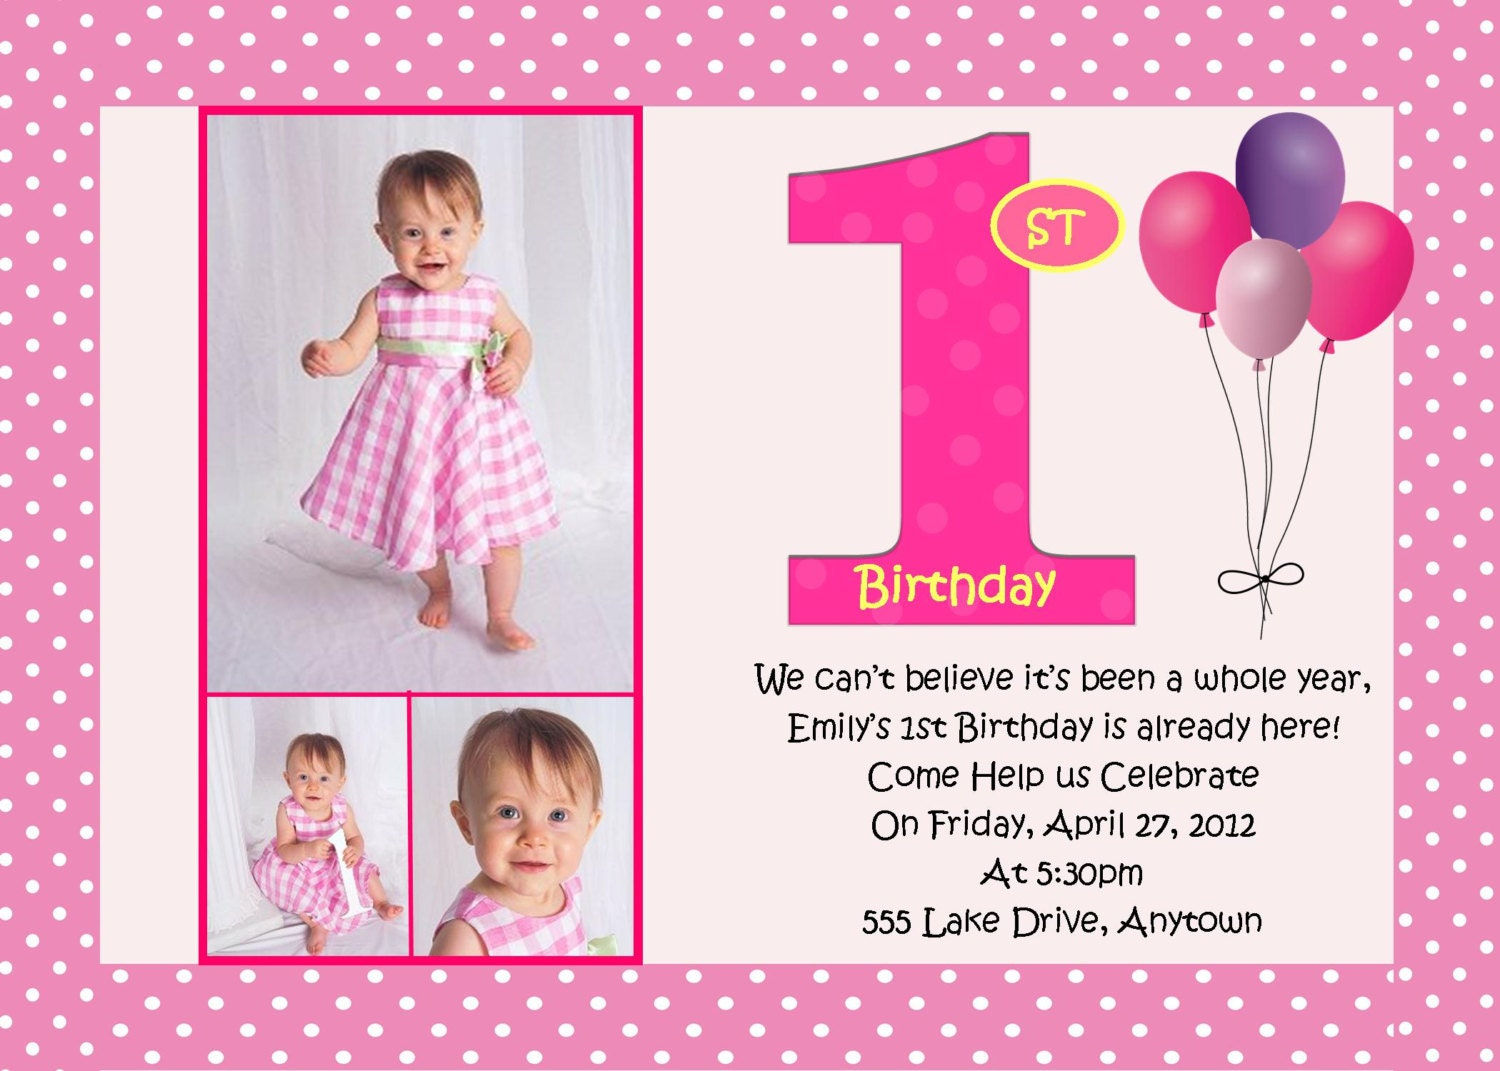 First Birthday Pink Birthday Invitation 3 Designs to Choose